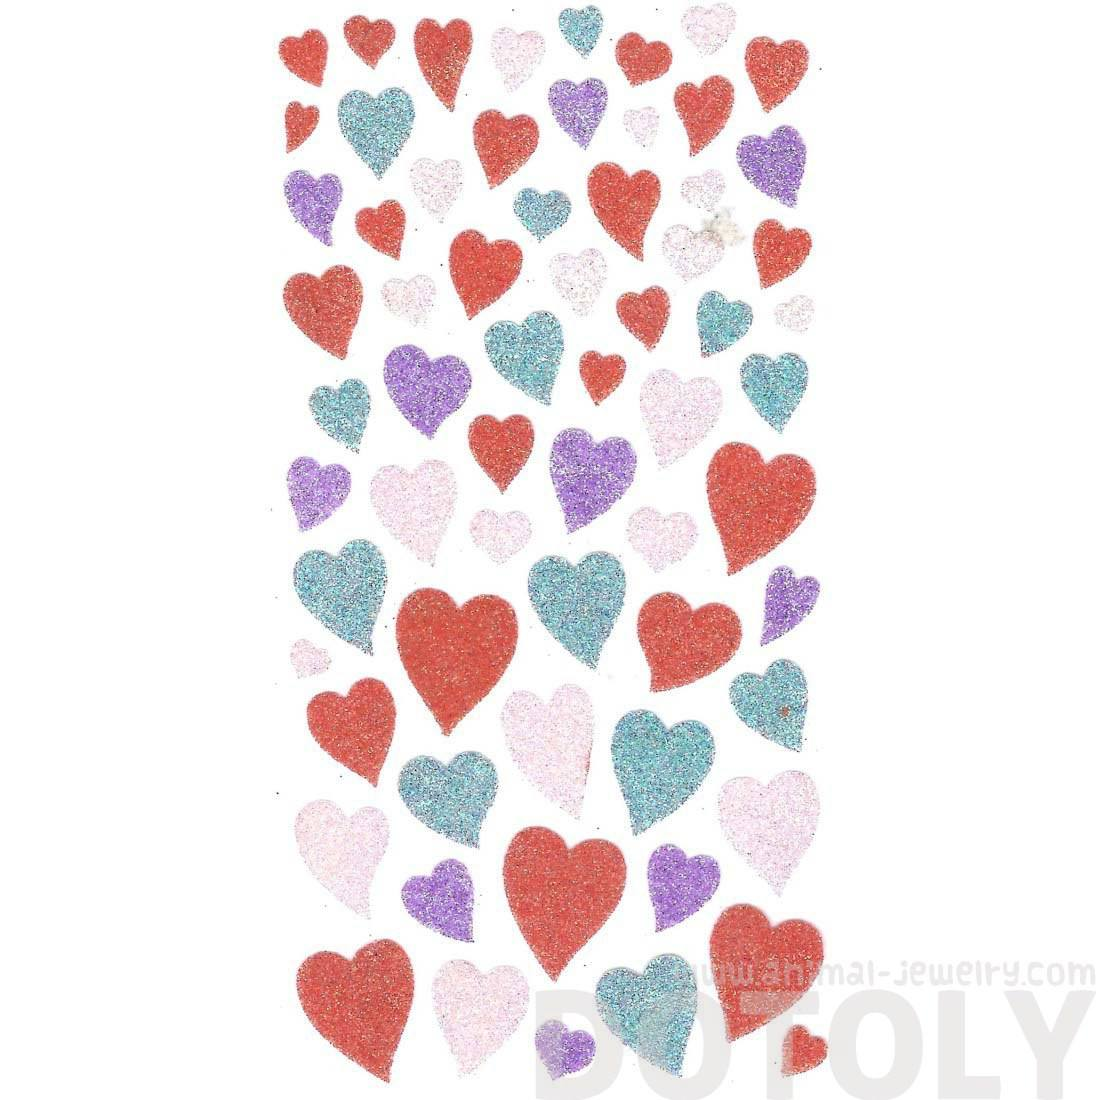 Classic Glittery Heart Shaped Shimmer Decorative Girly DIY Stickers